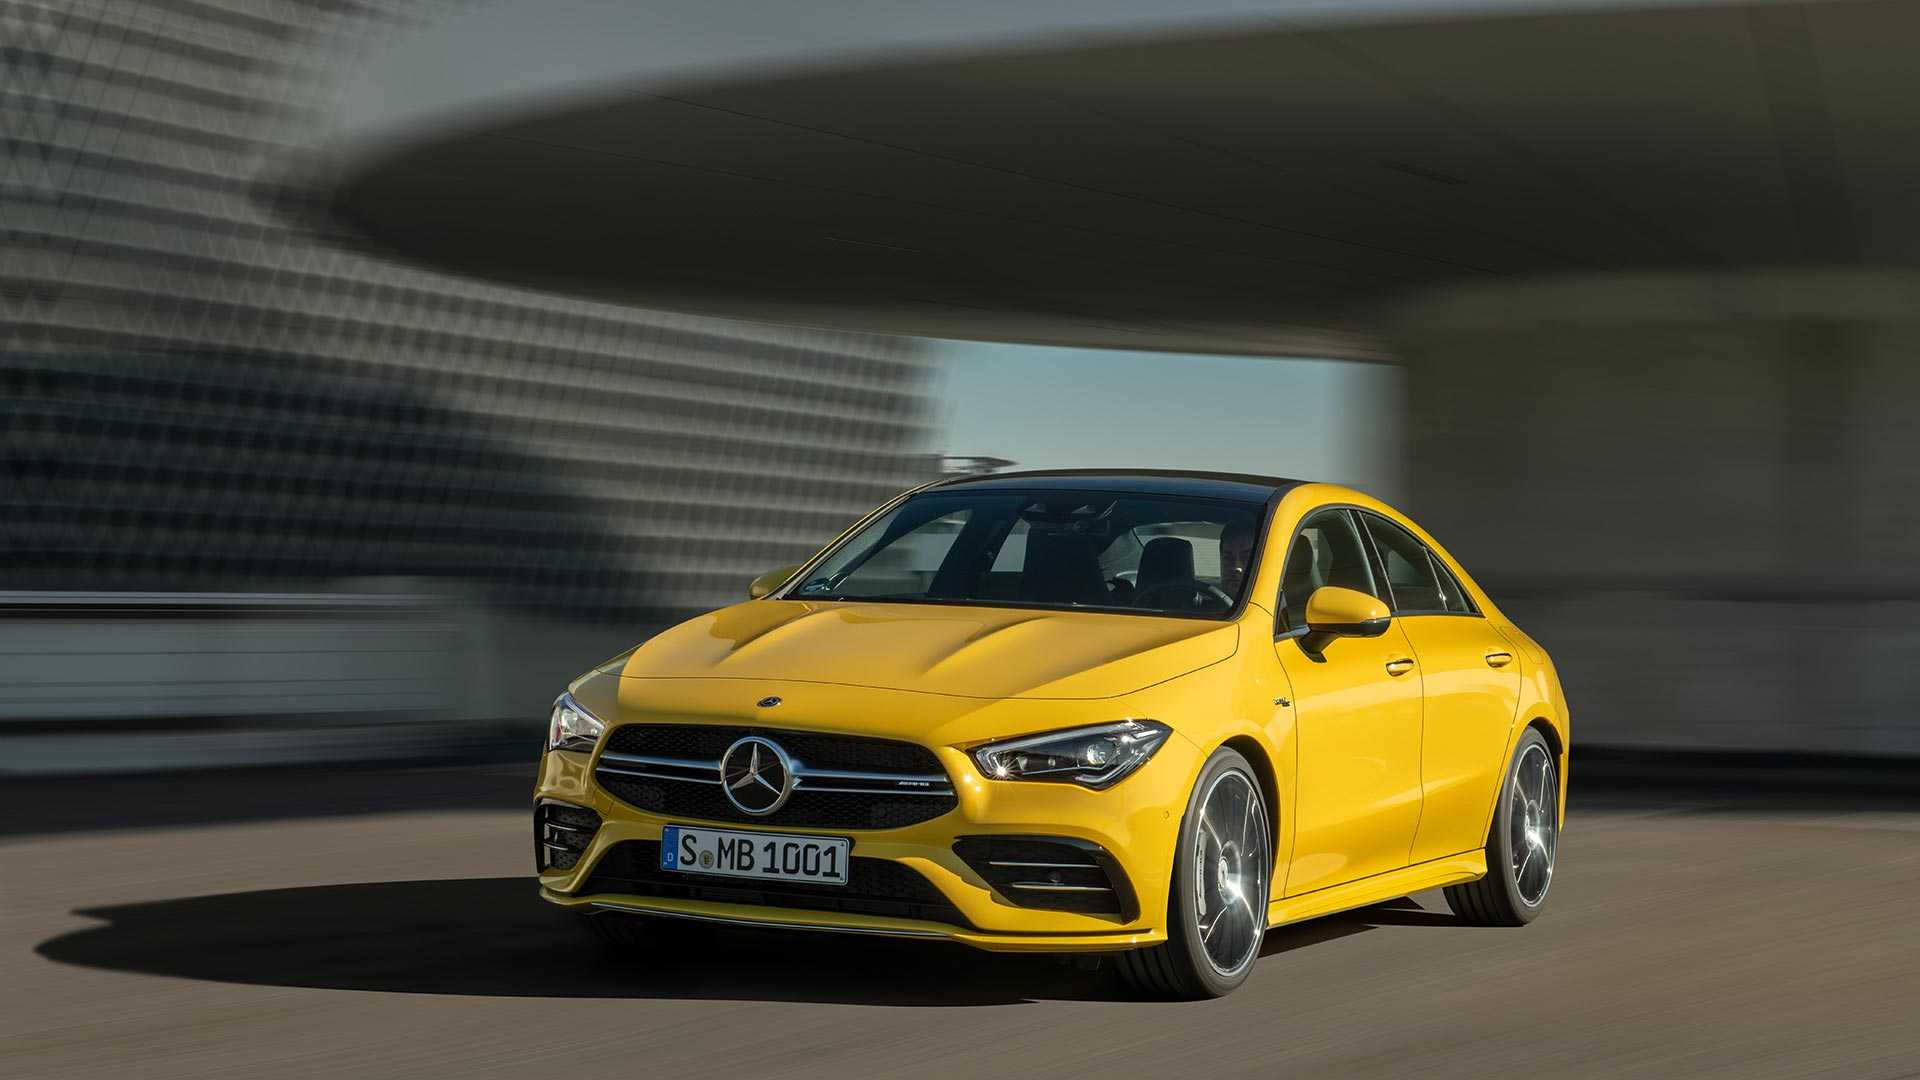 2020 Mercedes-AMG CLA 35 4MATIC (Color: Sun Yellow) Front Three-Quarter Wallpapers (1)